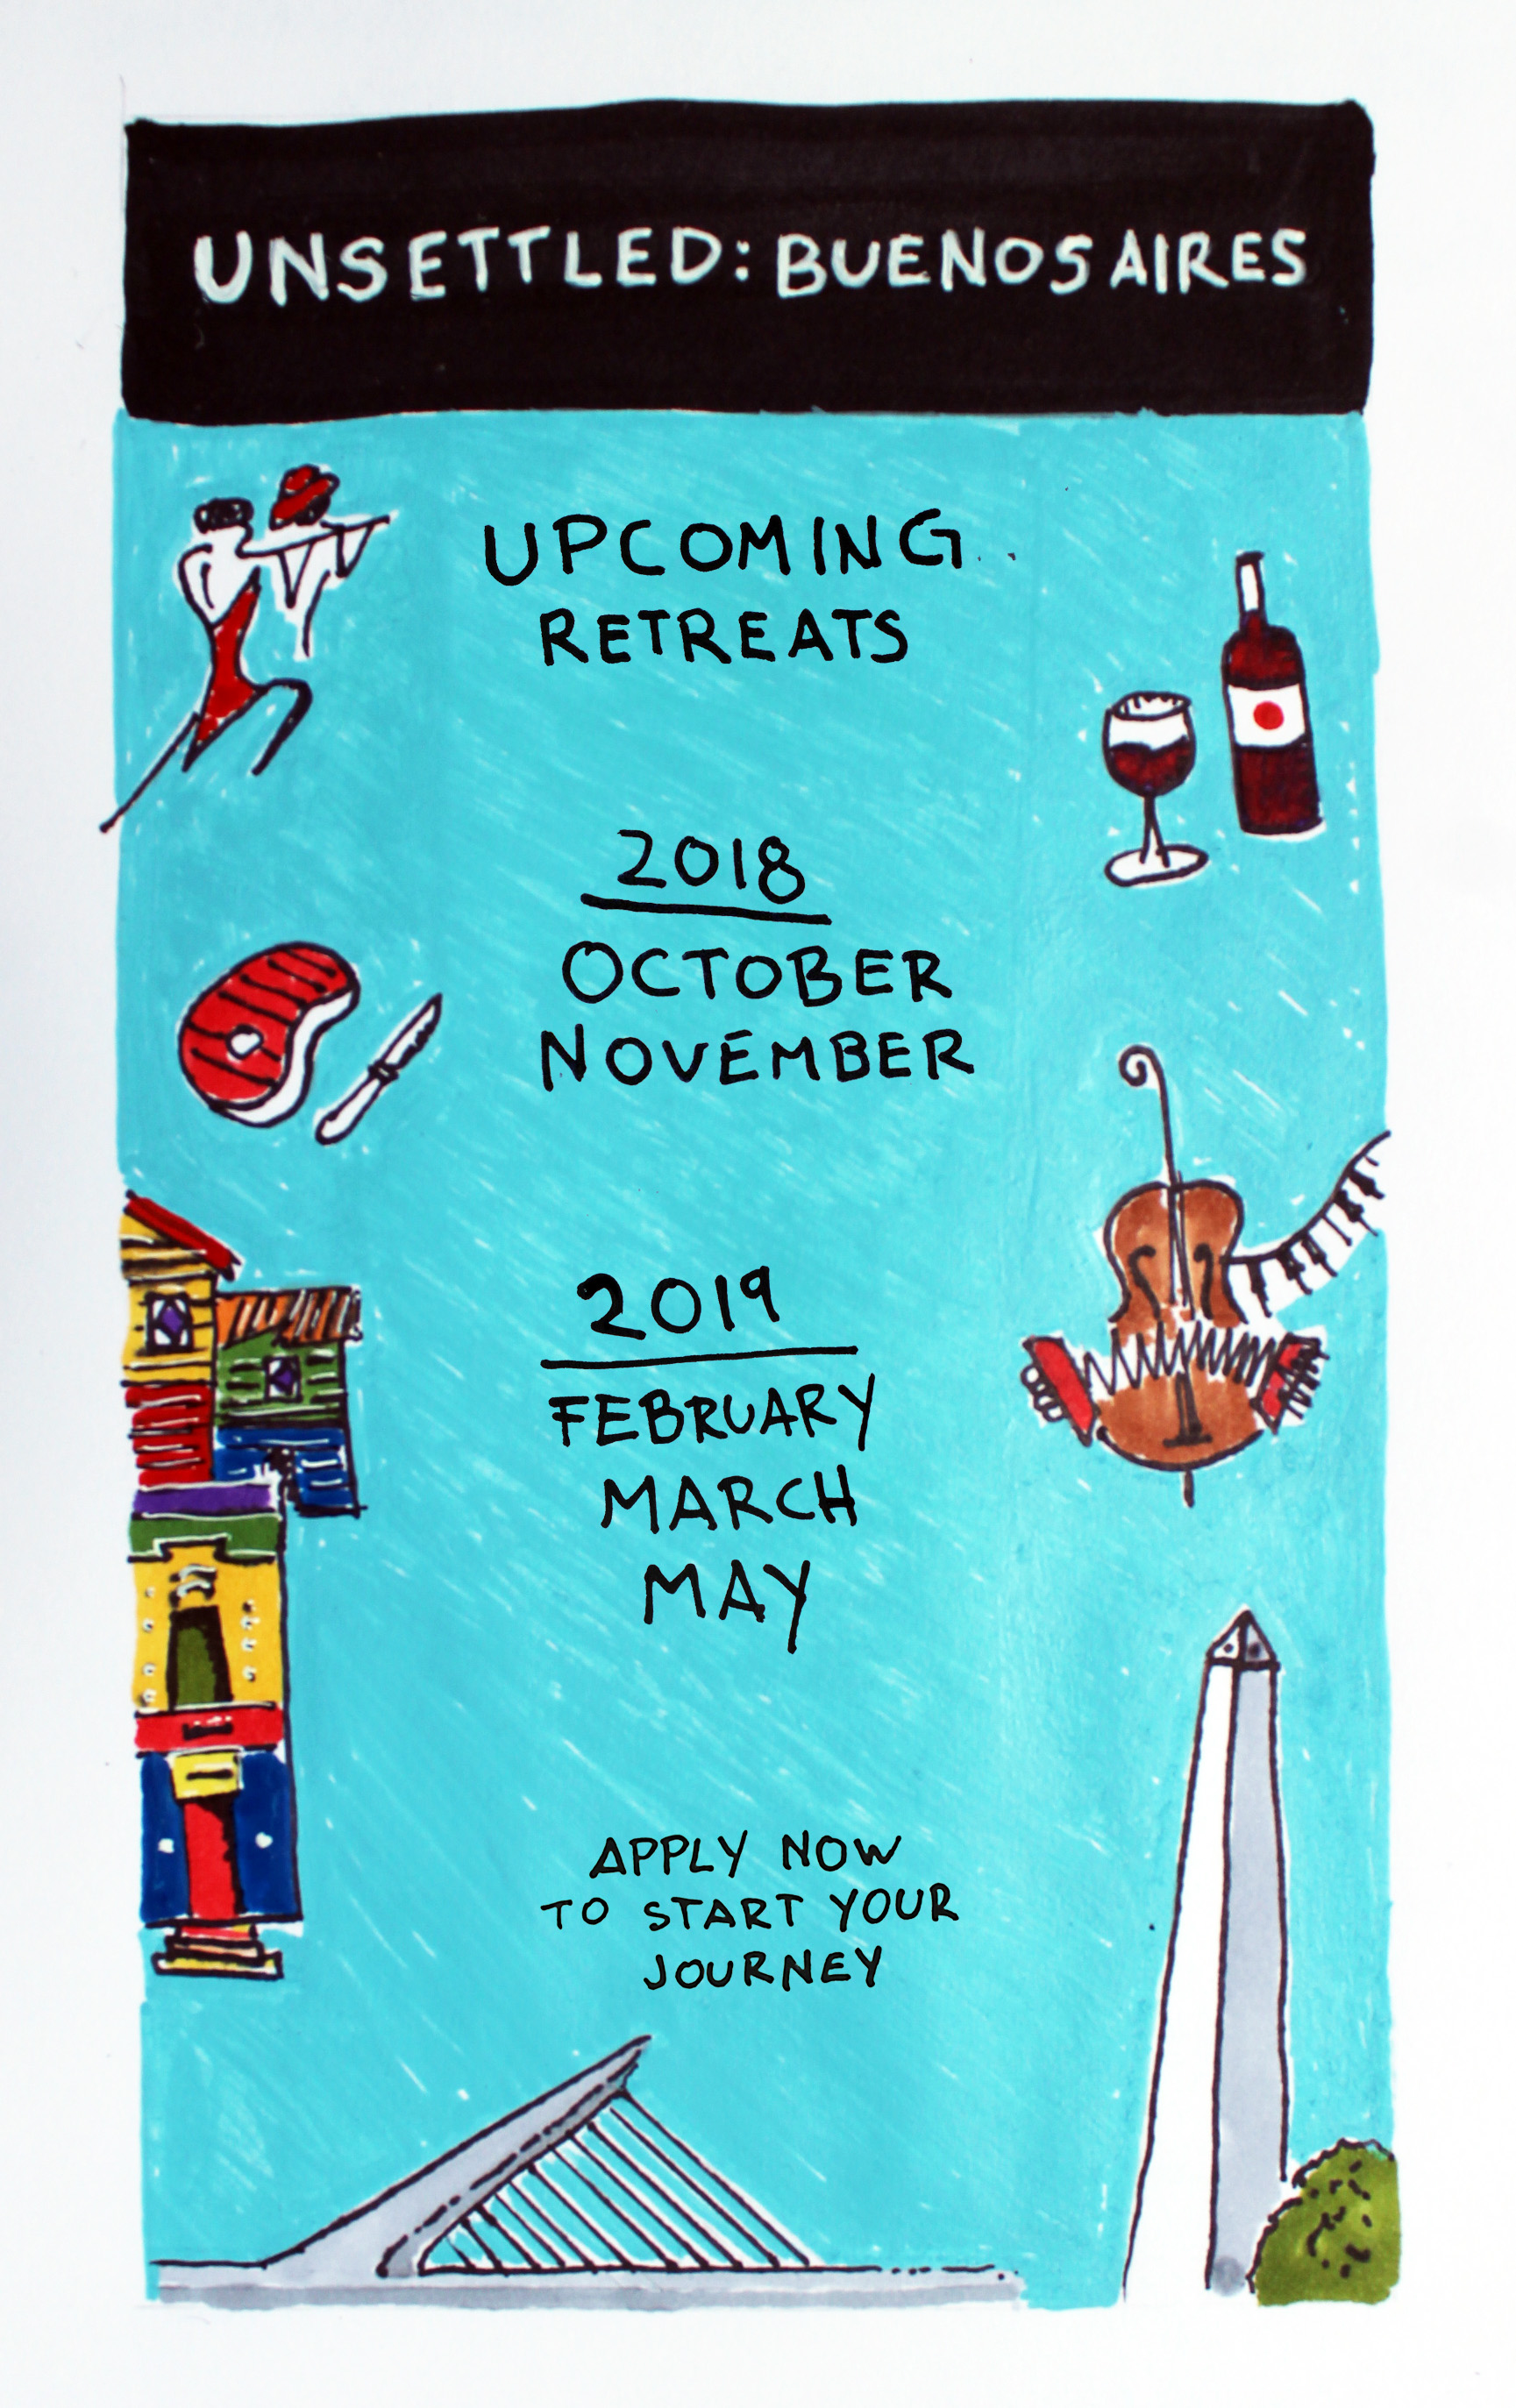 Unsettled: Buenos Aires - SEPT 28 - OCT 26 (ONE MONTH)OCT 27 - NOV 10 (TWO WEEKS)FEBRUARY, MARCH, MAY 2019 (ONE MONTH)